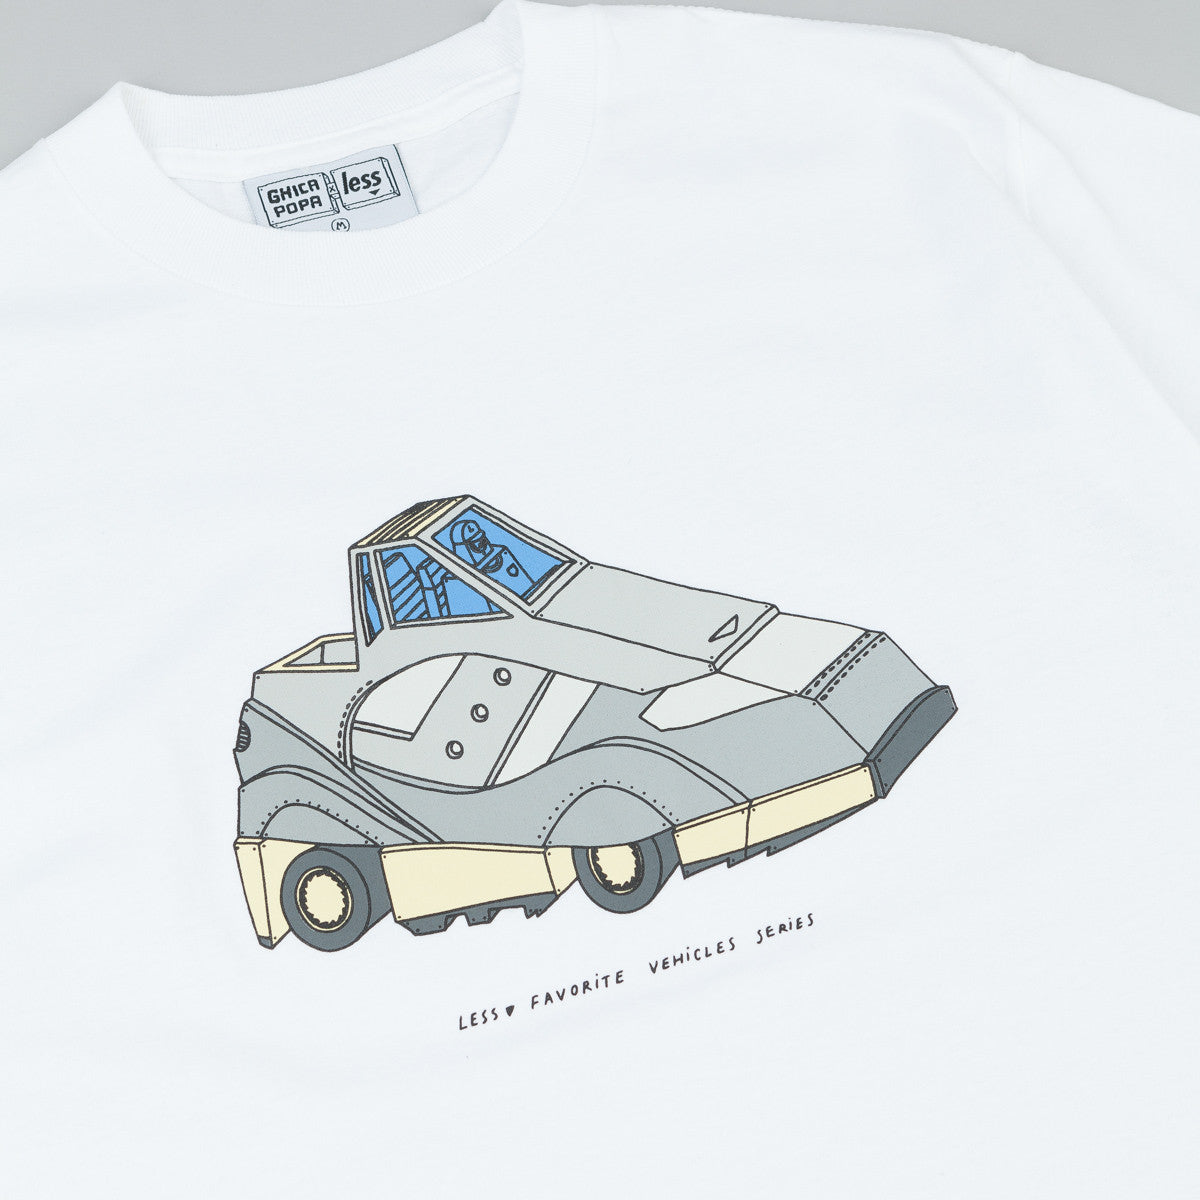 Less x Ghica Popa Vehicles Series G9 Shadow T-Shirt - White